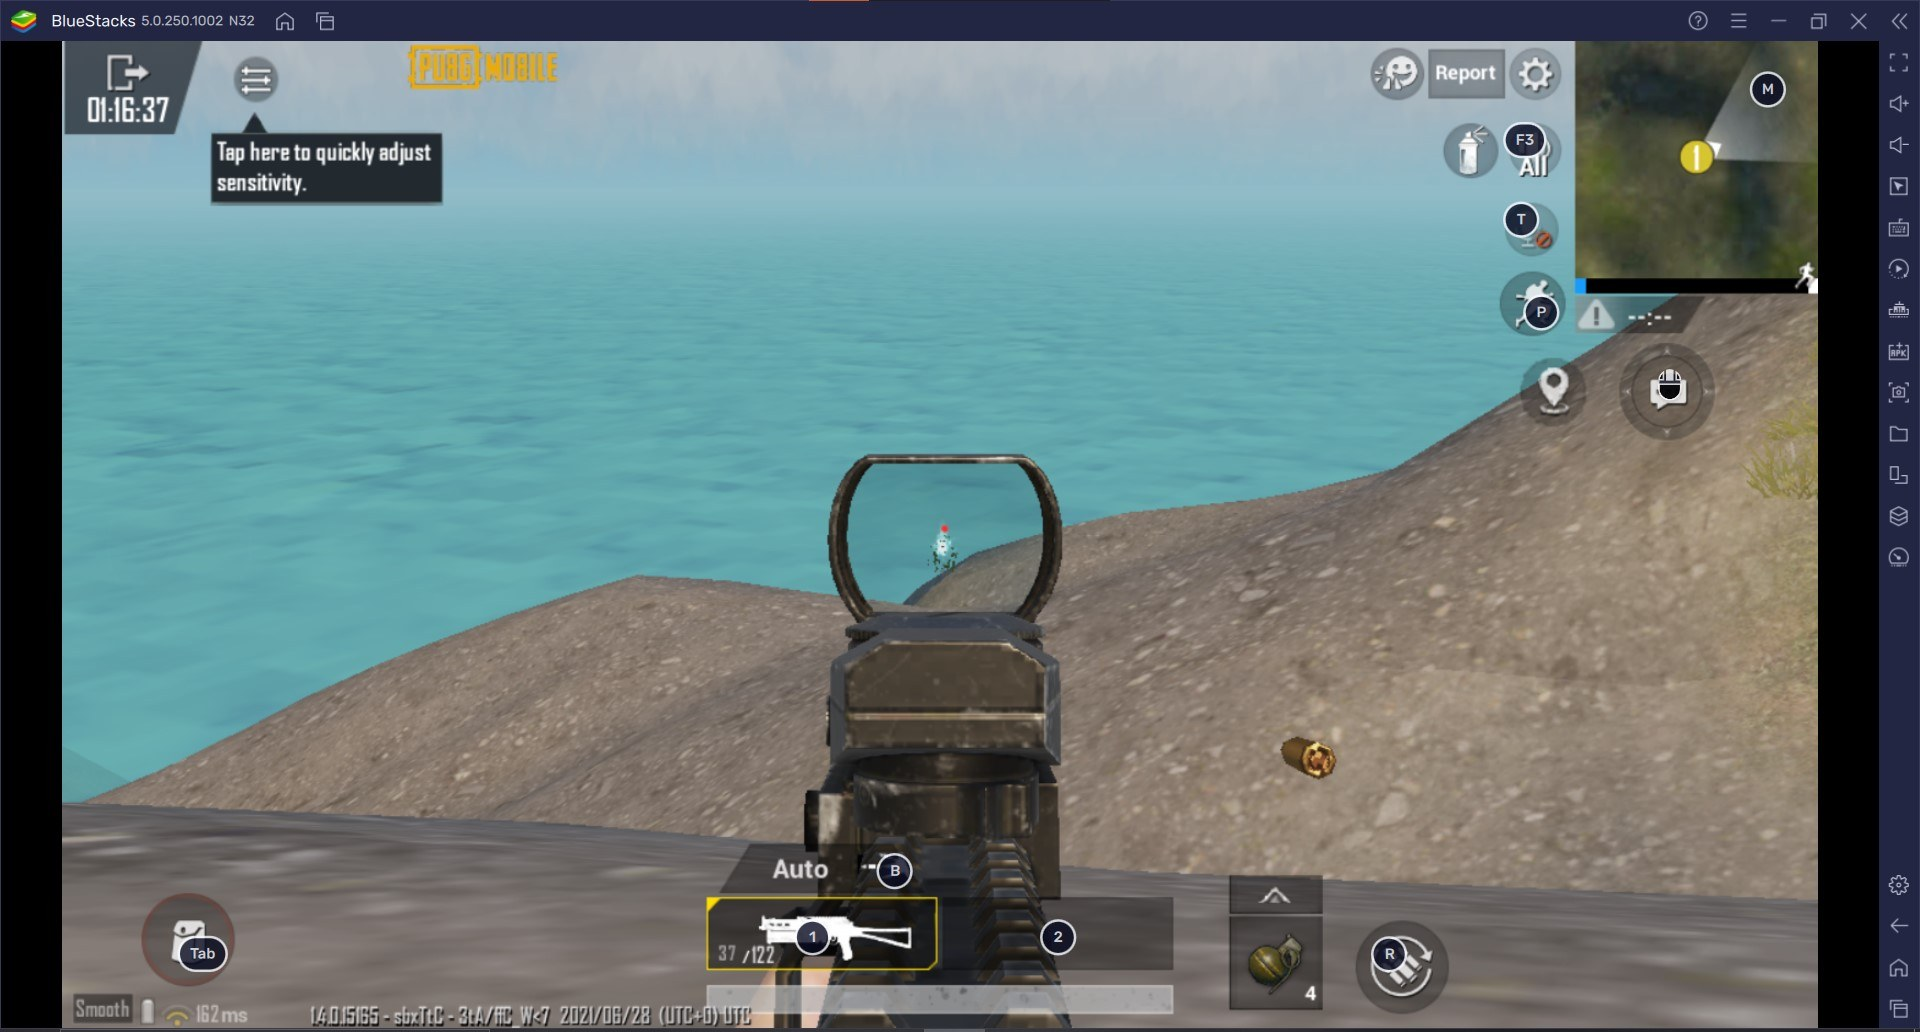 PUBG Mobile: BlueStacks Guide to Top 5 Mistakes Players Make